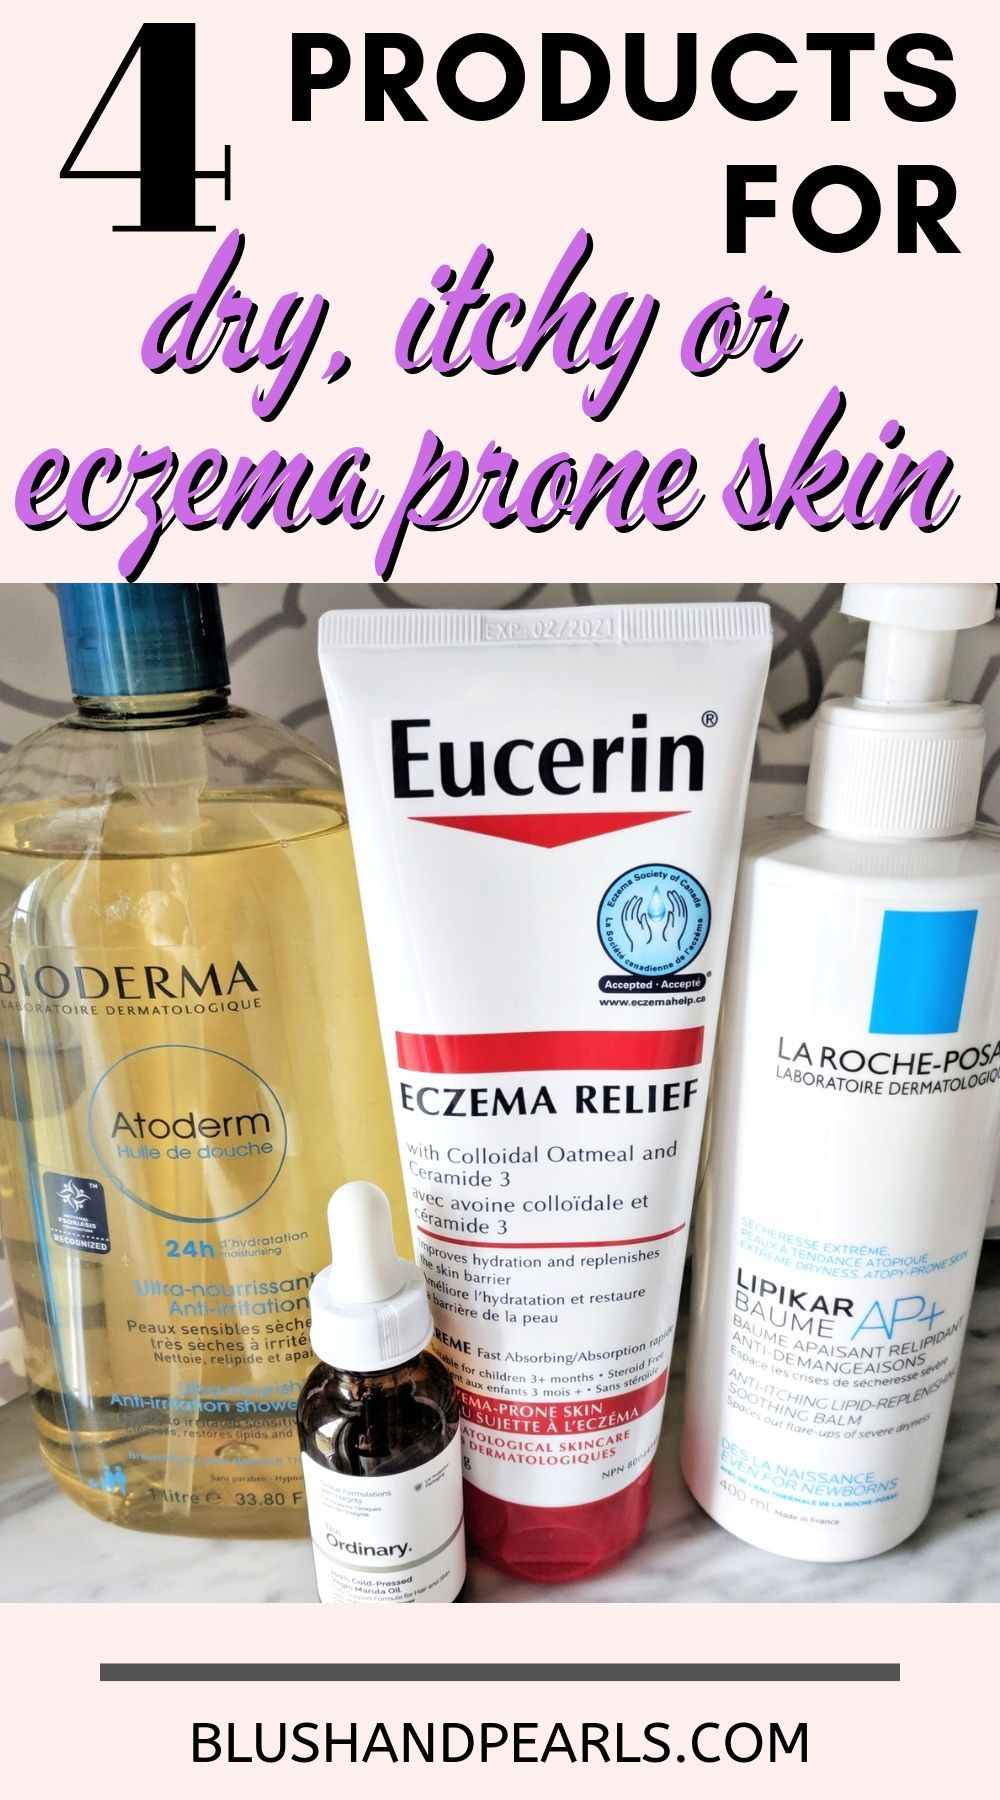 4 Products For Very Dry Itchy Or Eczema Prone Skin Blush Pearls Dry Skin Remedies Best Eczema Treatment Super Dry Skin